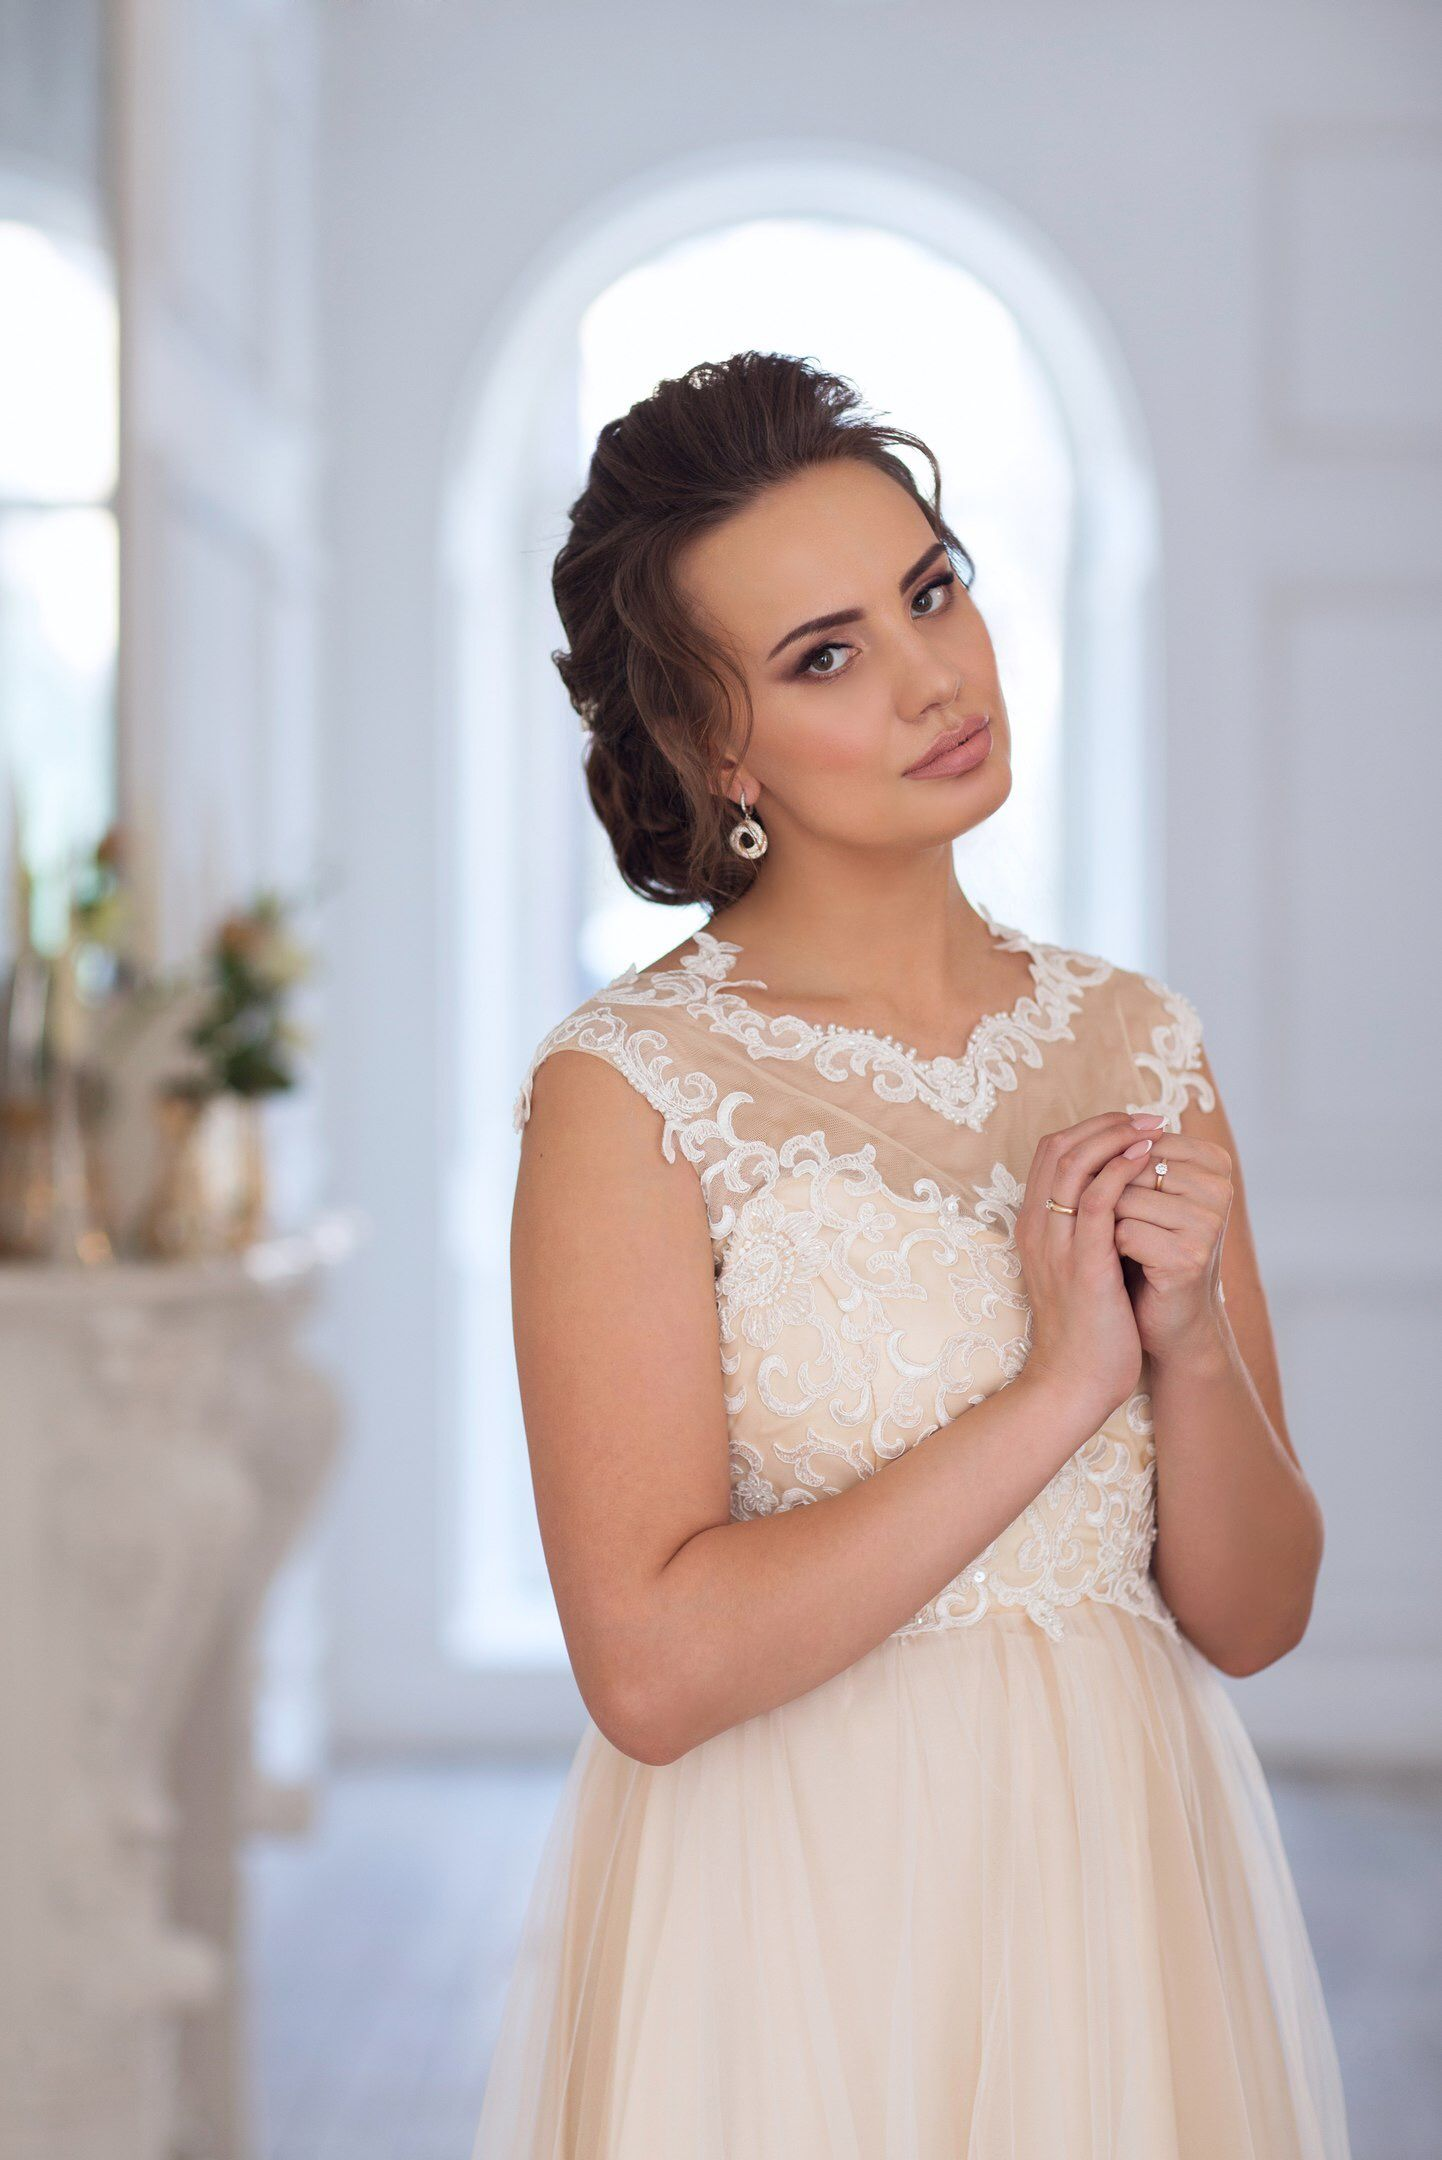 Morning wedding dresses  Wedding photographer Morning Bride and wedding day With Love